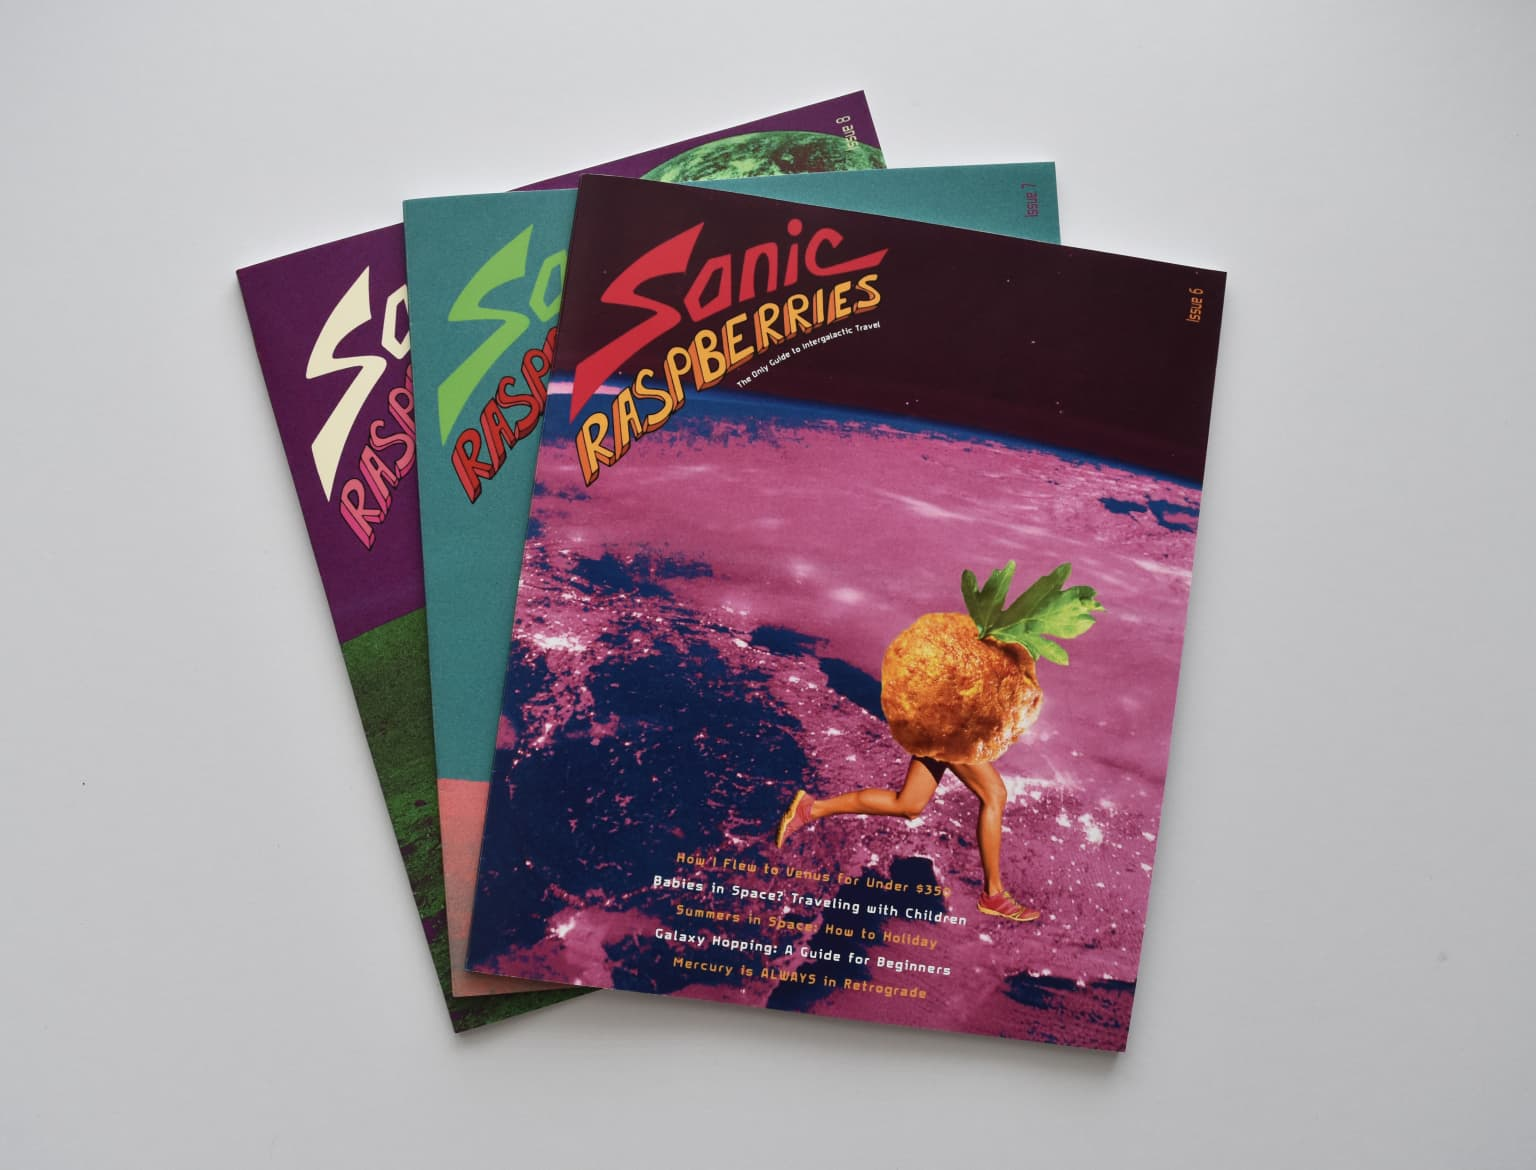 Sonic Raspberries - Intergalactic Travel Magazine